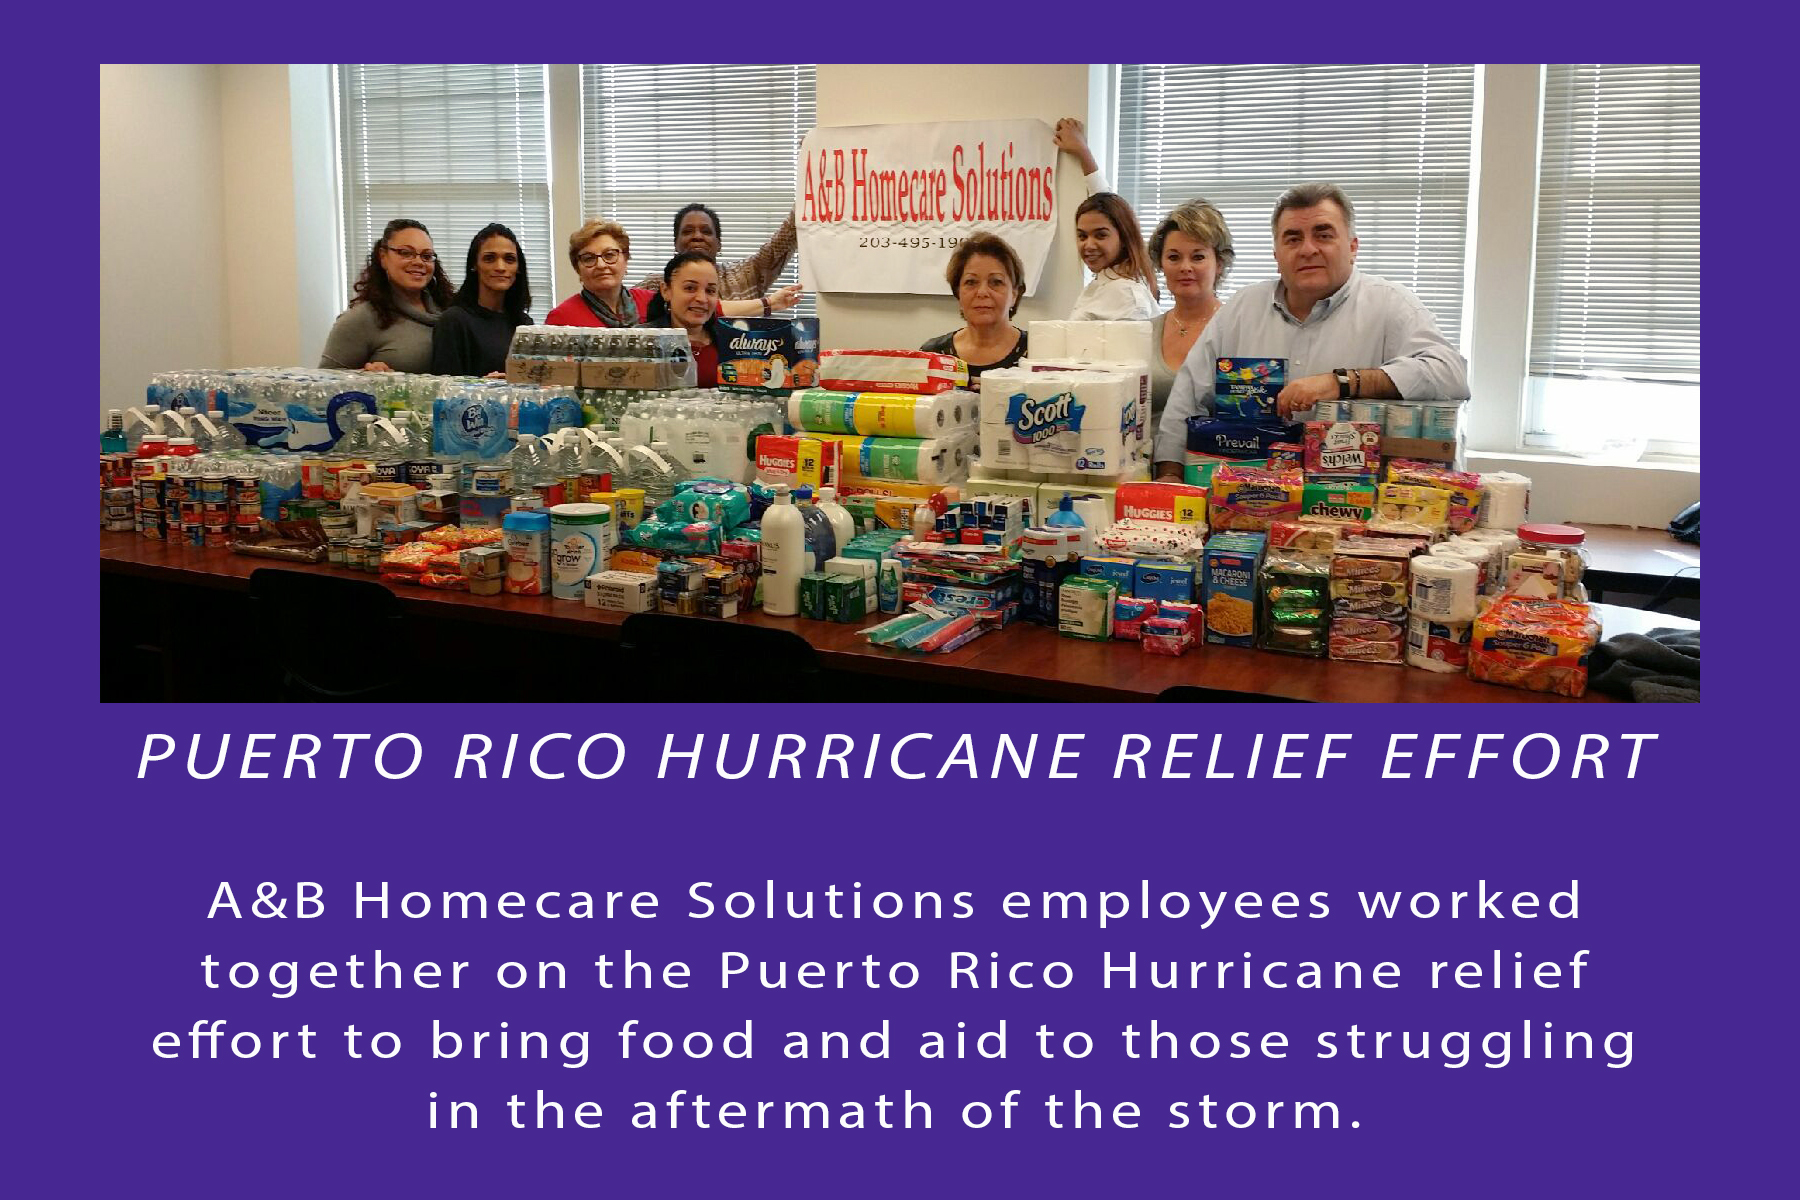 Puerto Rico Hurricane Relief Effort.jpg